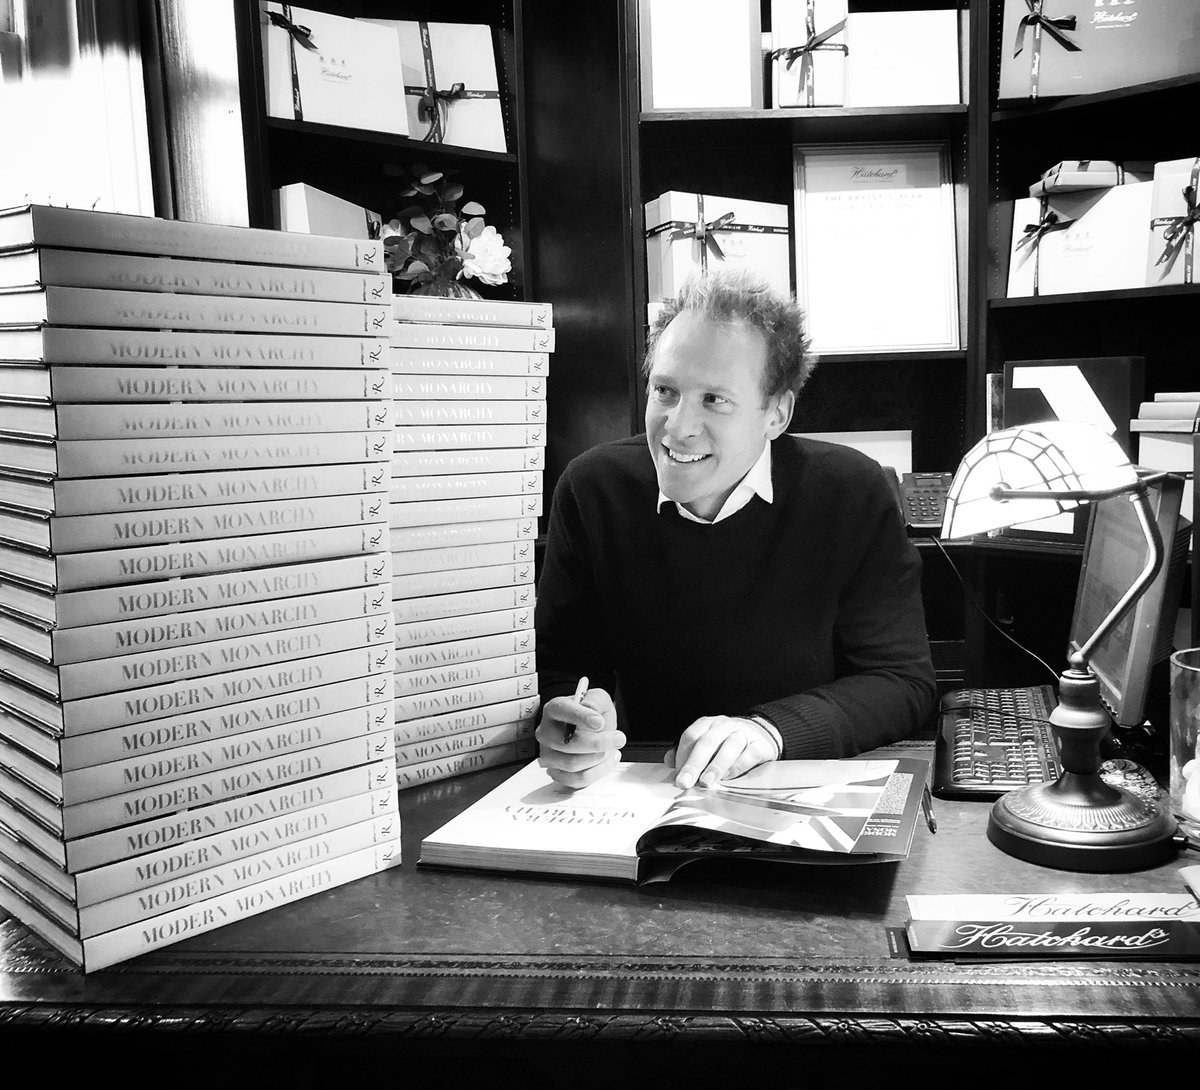 Great dropping into see my friends at @Hatchards yesterday - They are now fully stocked up on signed copies of Modern Monarchy after running dangerously low🙀!